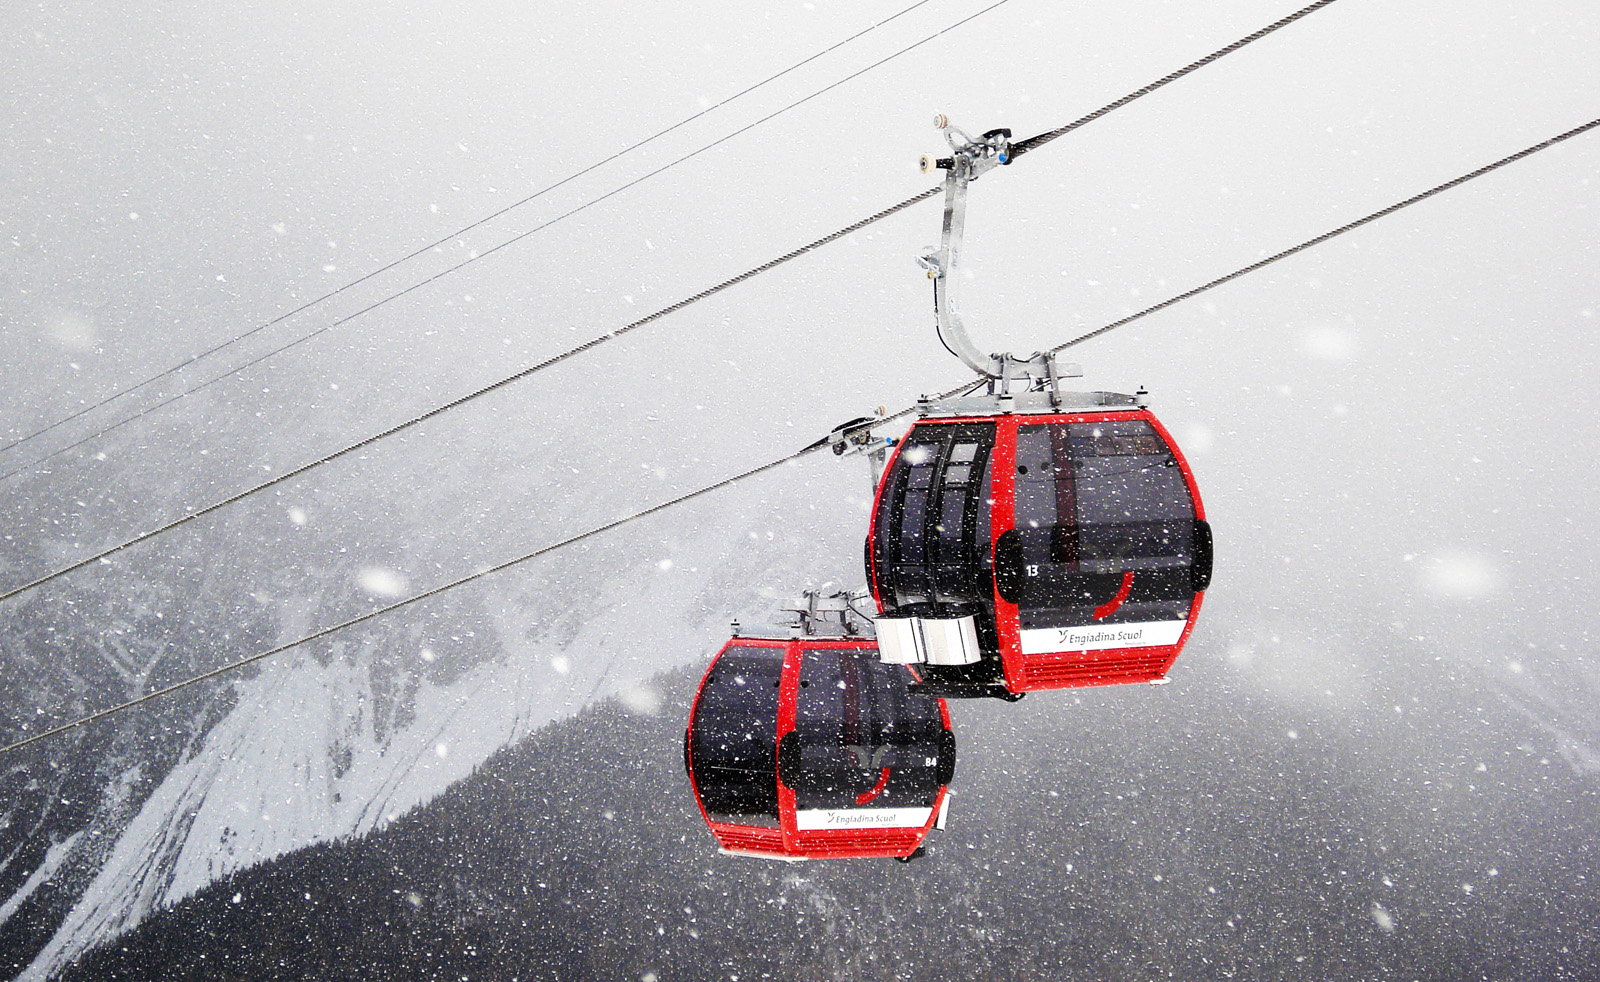 Cable cars work well in the snow